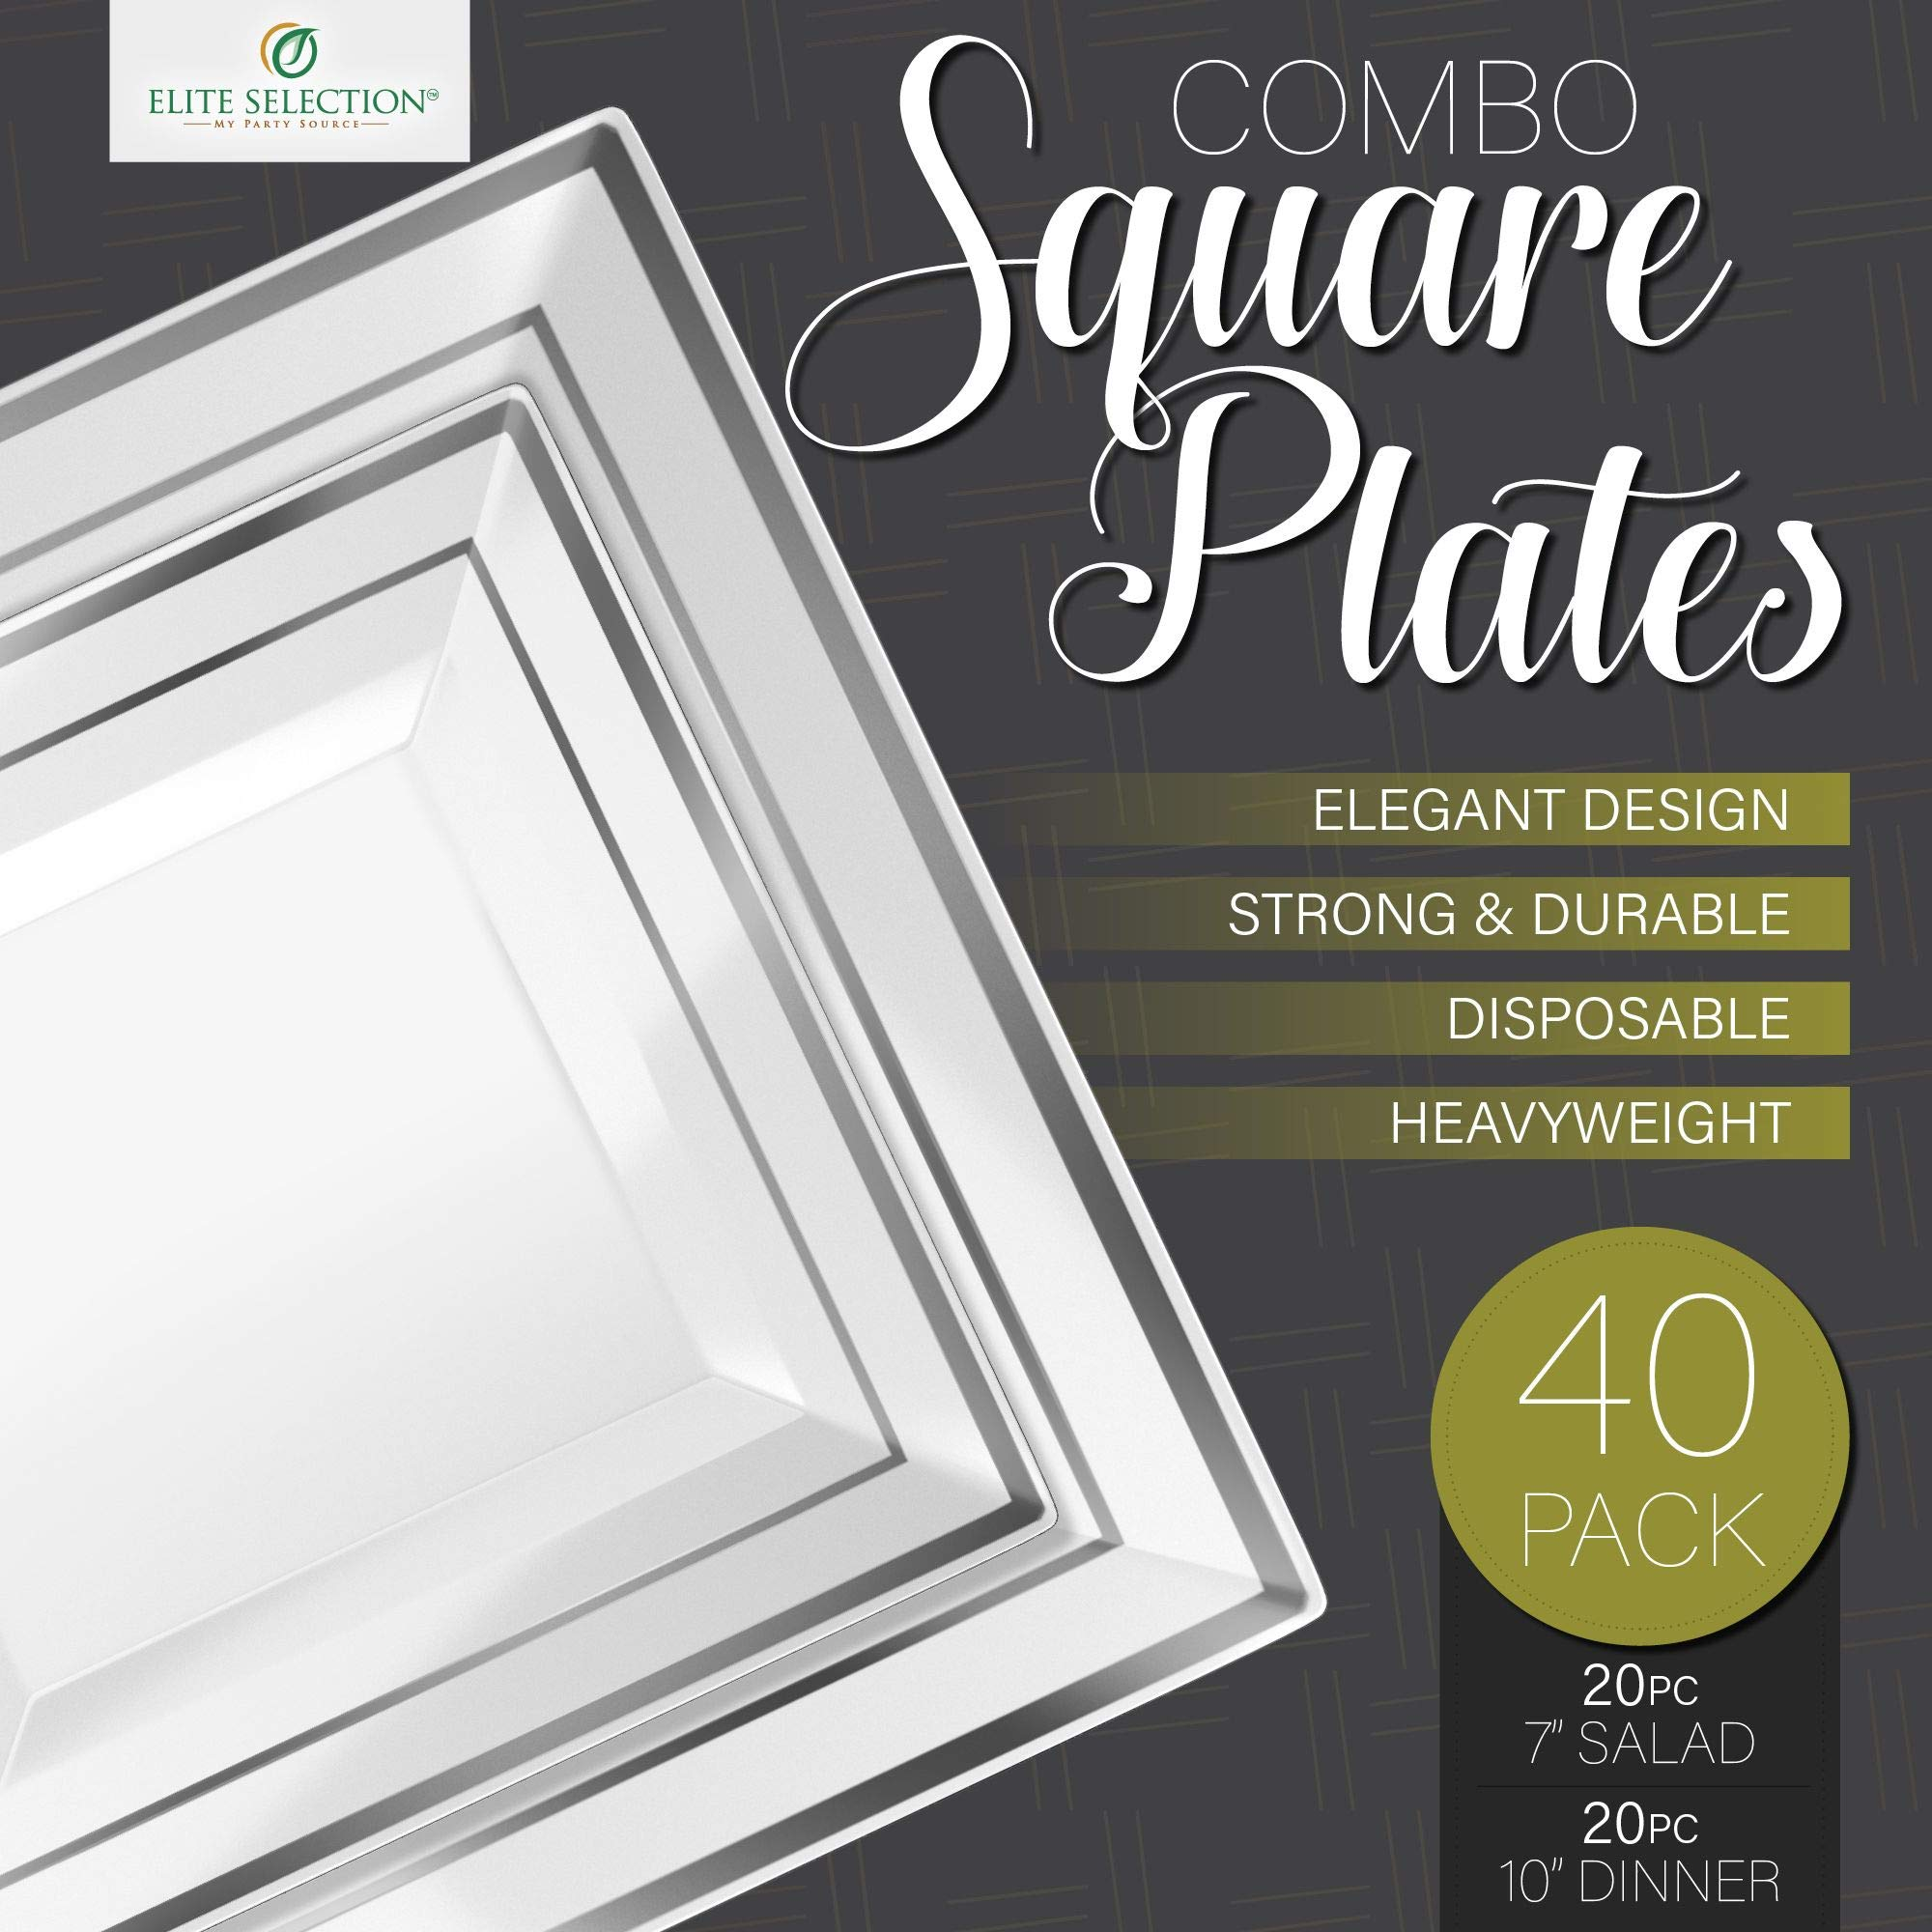 Disposable Plastic Plate Set - 40 Pack Dinnerware with 10'' Dinner and 7'' Salad Plate (20 Count Each) with Elegant Silver Trim for Wedding, Birthday, Party - by Elite Selection by ELITE SELECTION (Image #4)